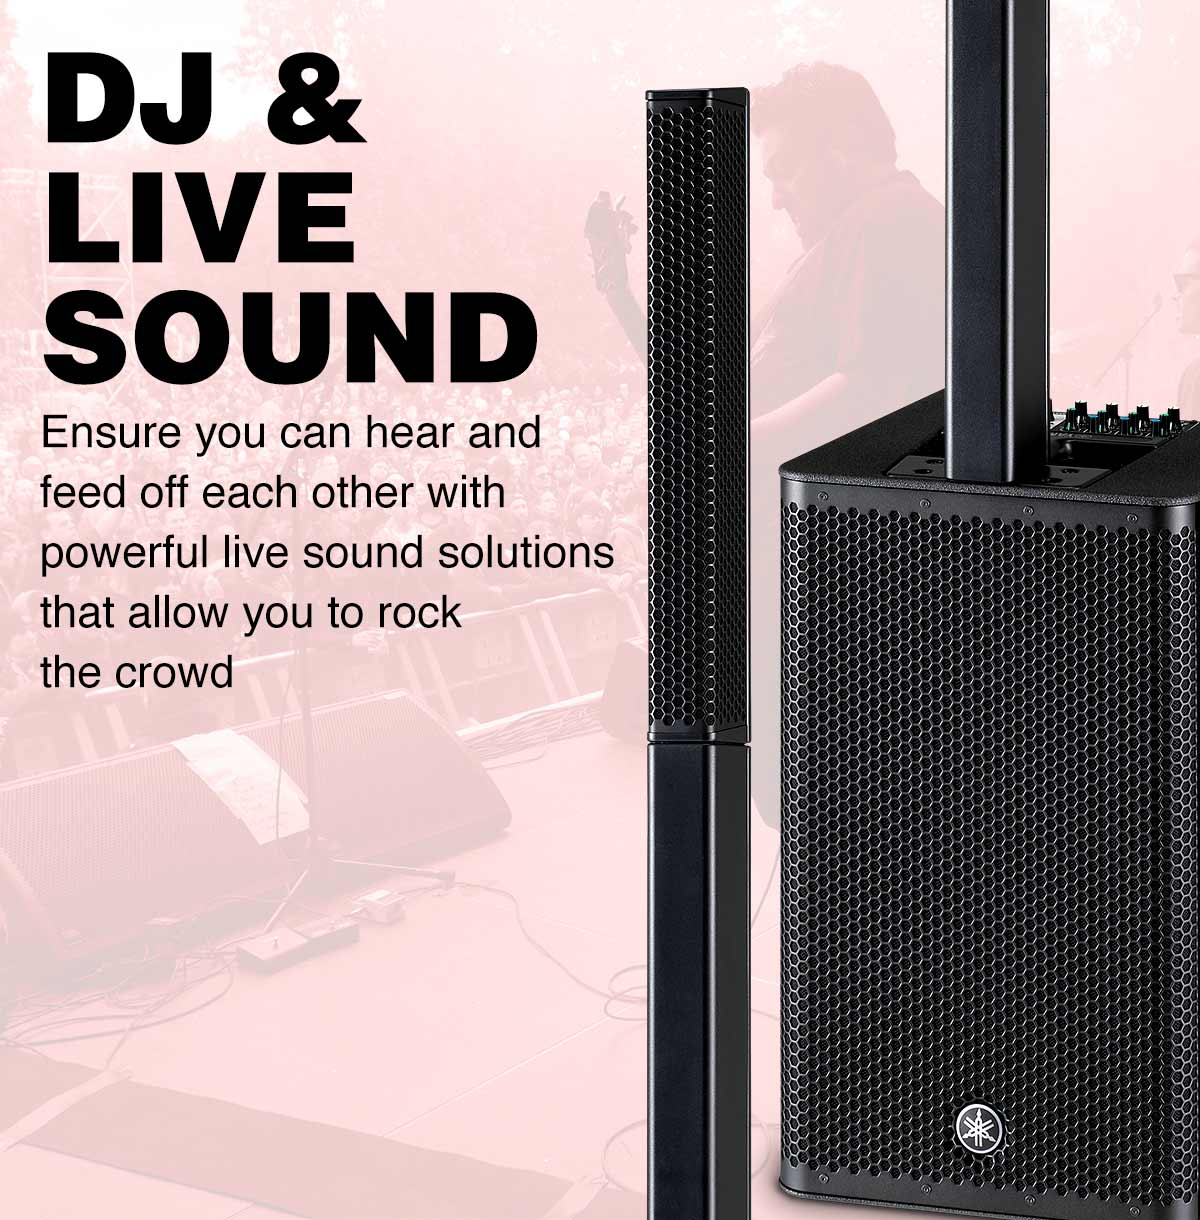 DJ and Live Sound. Ensure you can hear and feed off each other with powerful live sound solutions that allow you to rock the crowd.